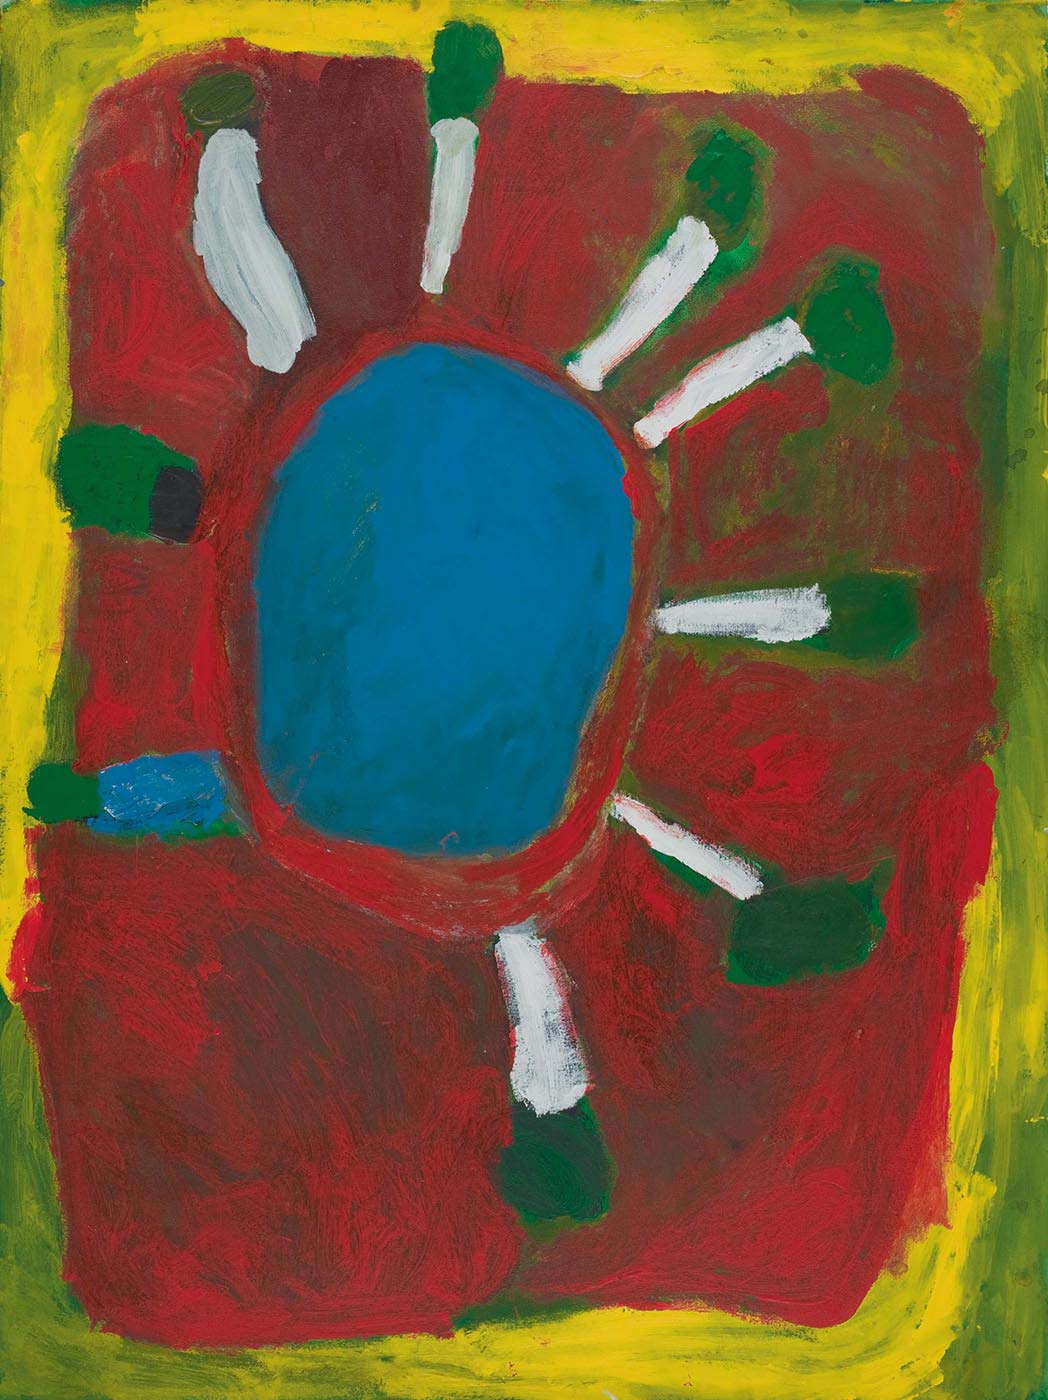 A painting on canvas with a blue circle in the centre with white and green tree-like motifs radiating around the edge, as well as one blue and green rectangle and a green and black oval shape. The central image is on a background of green overlaid by a square of red with a yellow border.